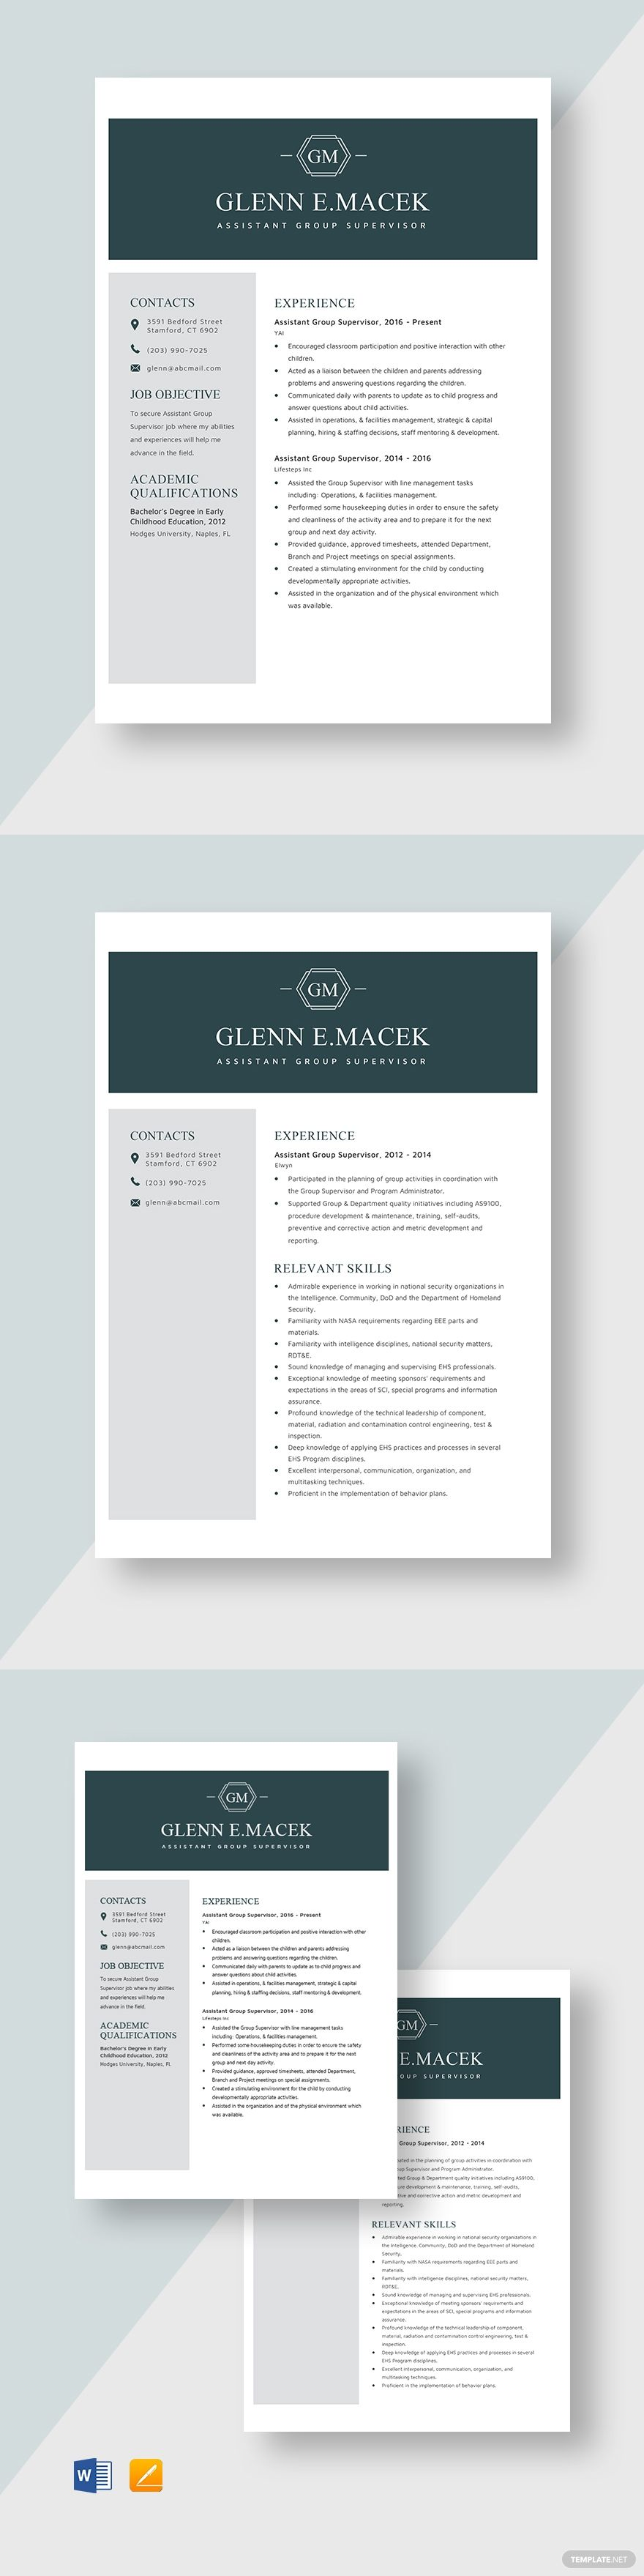 Assistant Group Supervisor Resume Template in 2020